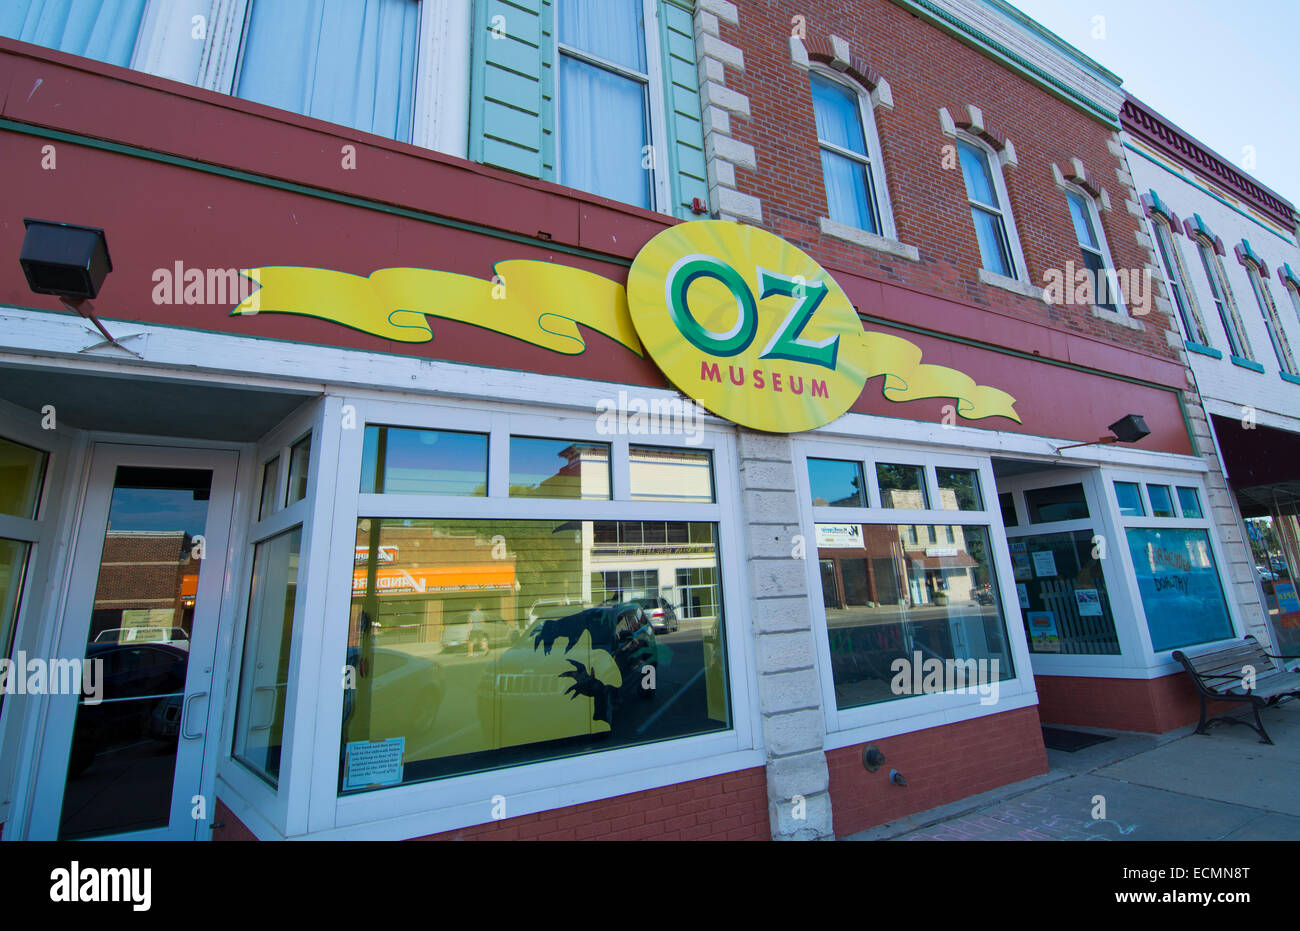 Wamego Kansas home of Oz Museum  from The Wizard of Oz going home to Kansas in downtown village on Lincoln Avenue - Stock Image